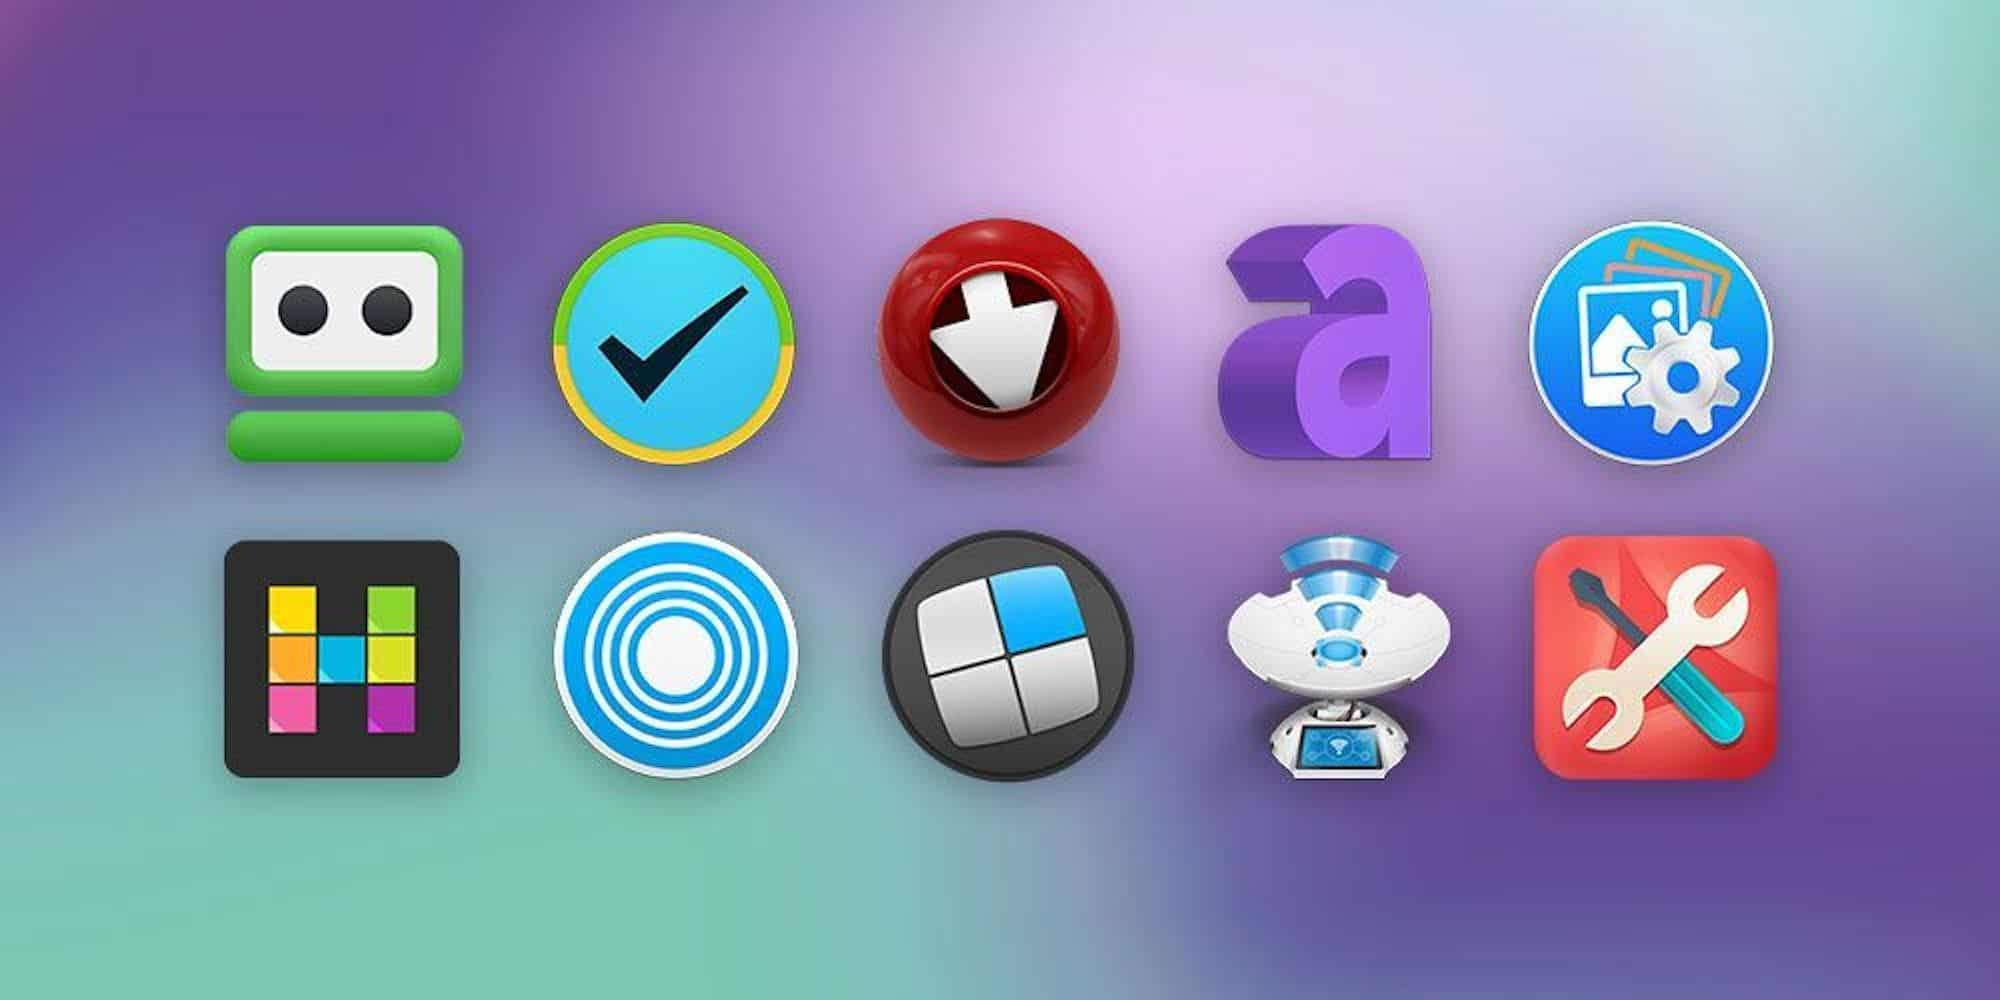 Name your price for a bundle of 10 top-shelf Mac apps.